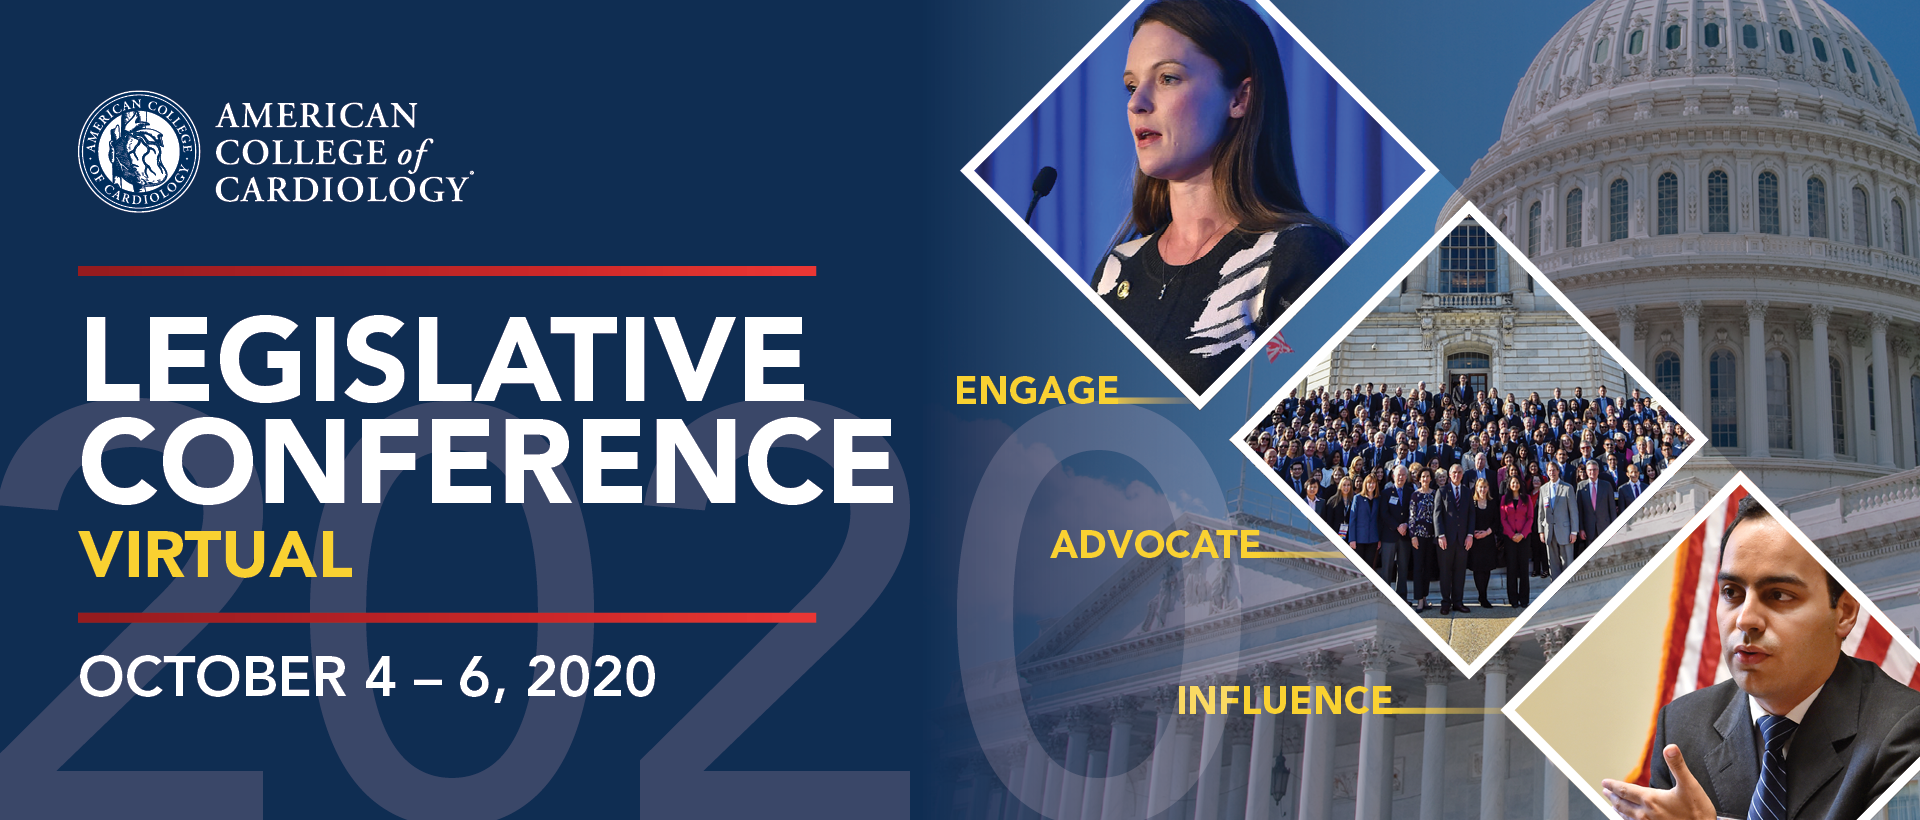 2020 American College of Cardiology Legislative Conference